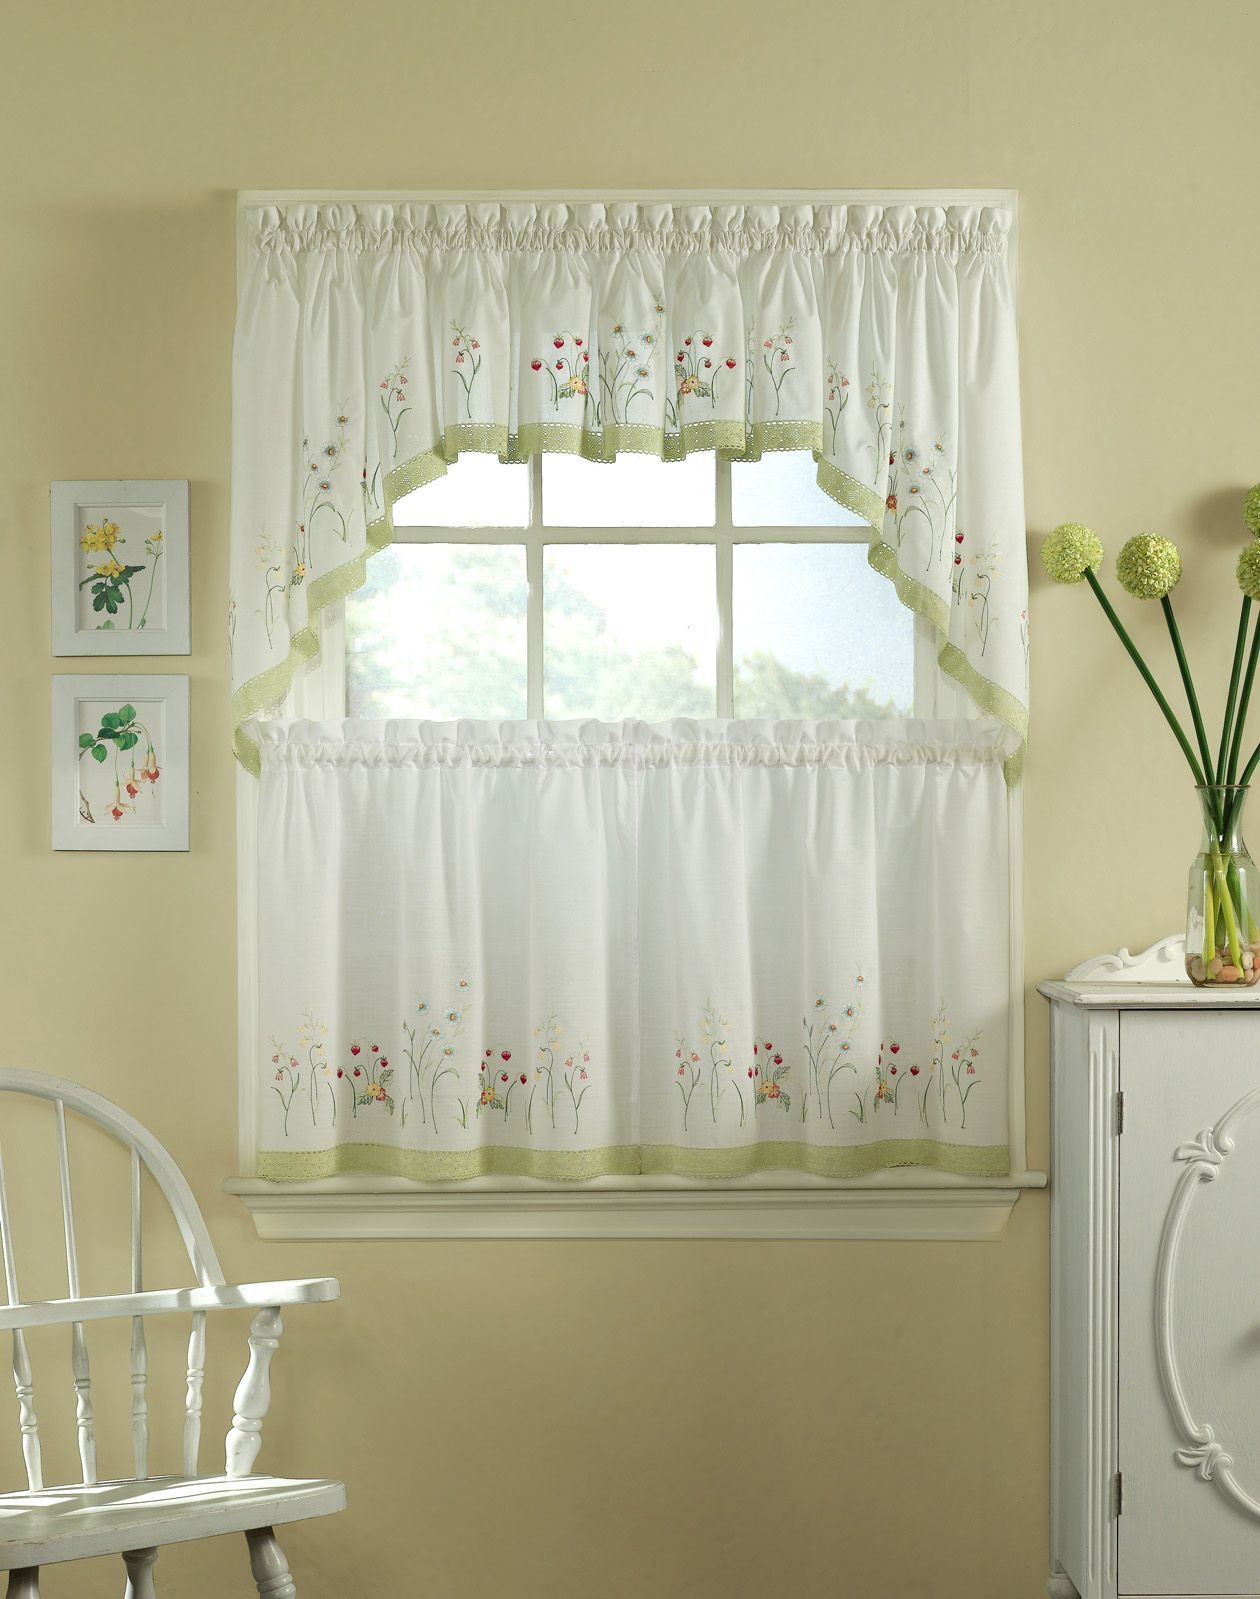 Half Window Curtains Ideas | Kitchen Curtains, Kitchen Pertaining To Micro Striped Semi Sheer Window Curtain Pieces (View 14 of 20)